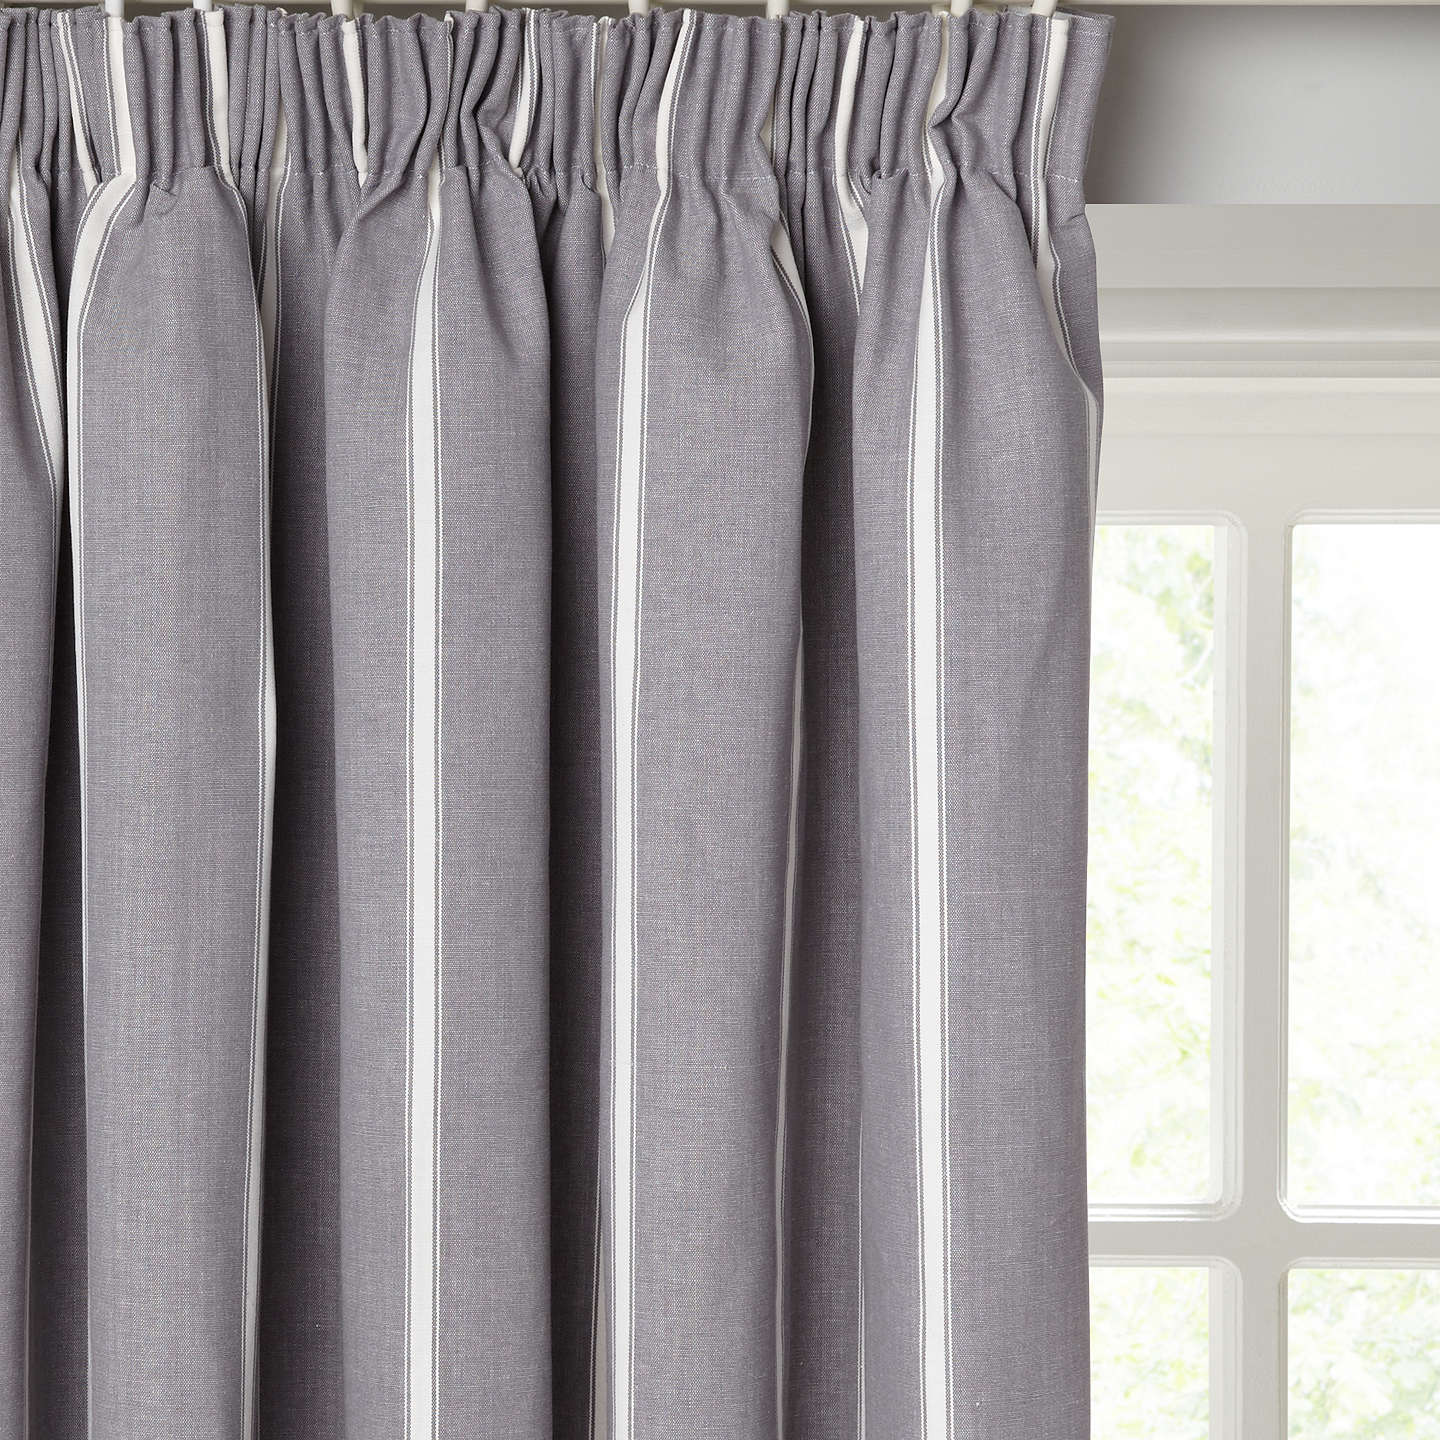 curtains lining designs panels panel drape and all coordinating length stripe striped navy standard drapes inch horizontal carousel width blackout large